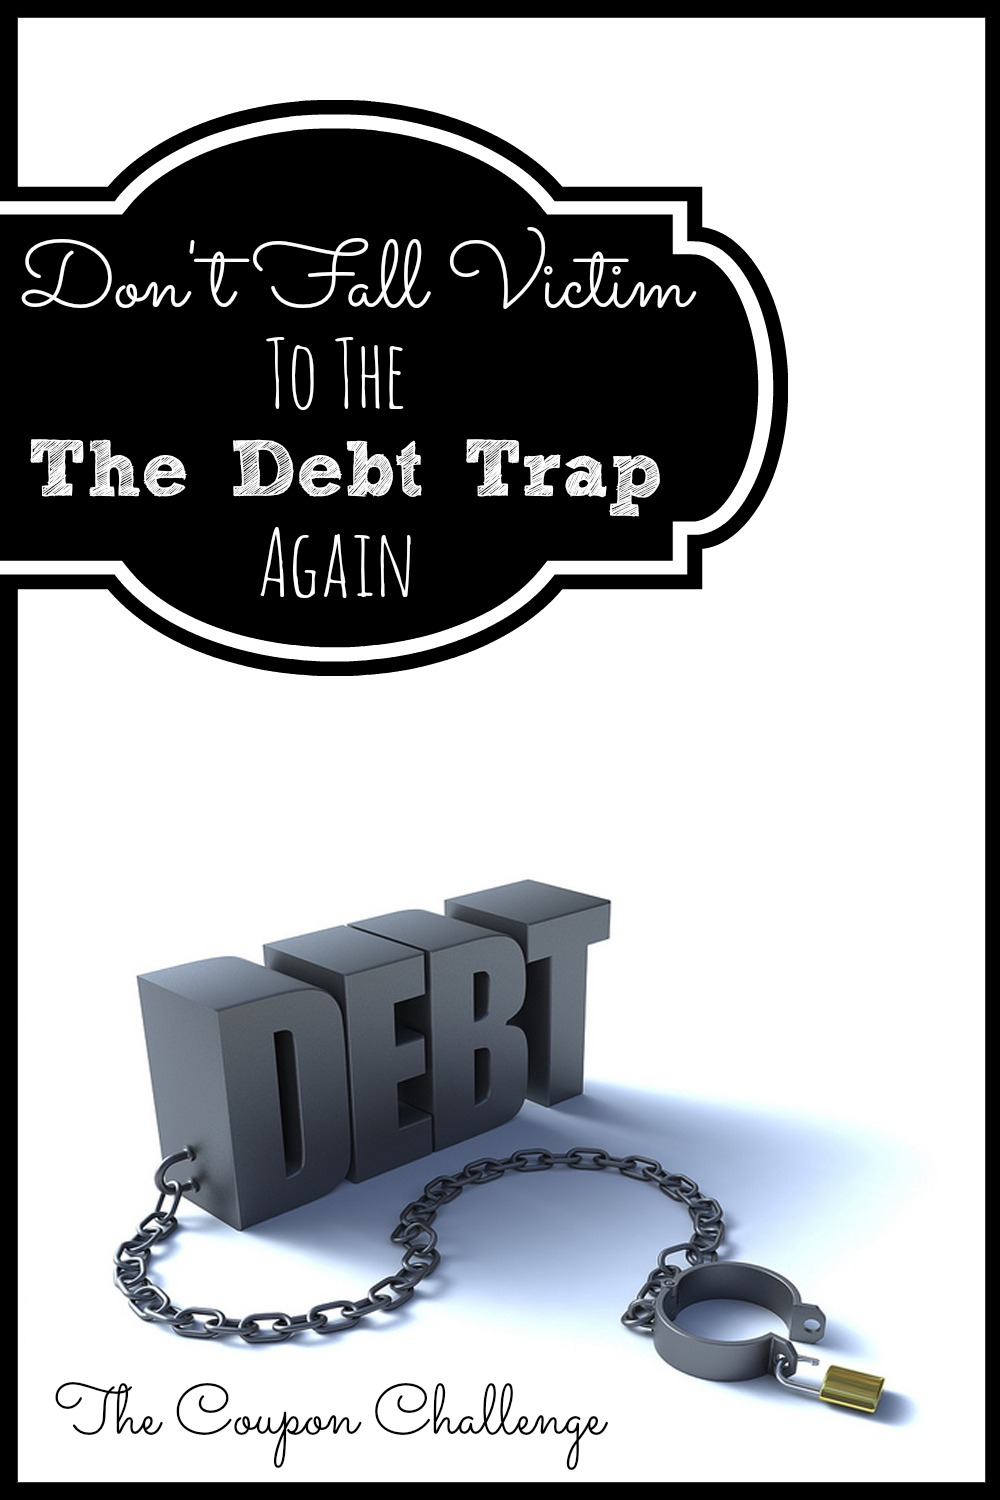 Don't-Fall-Victim-To-The-Debt-Trap-Again